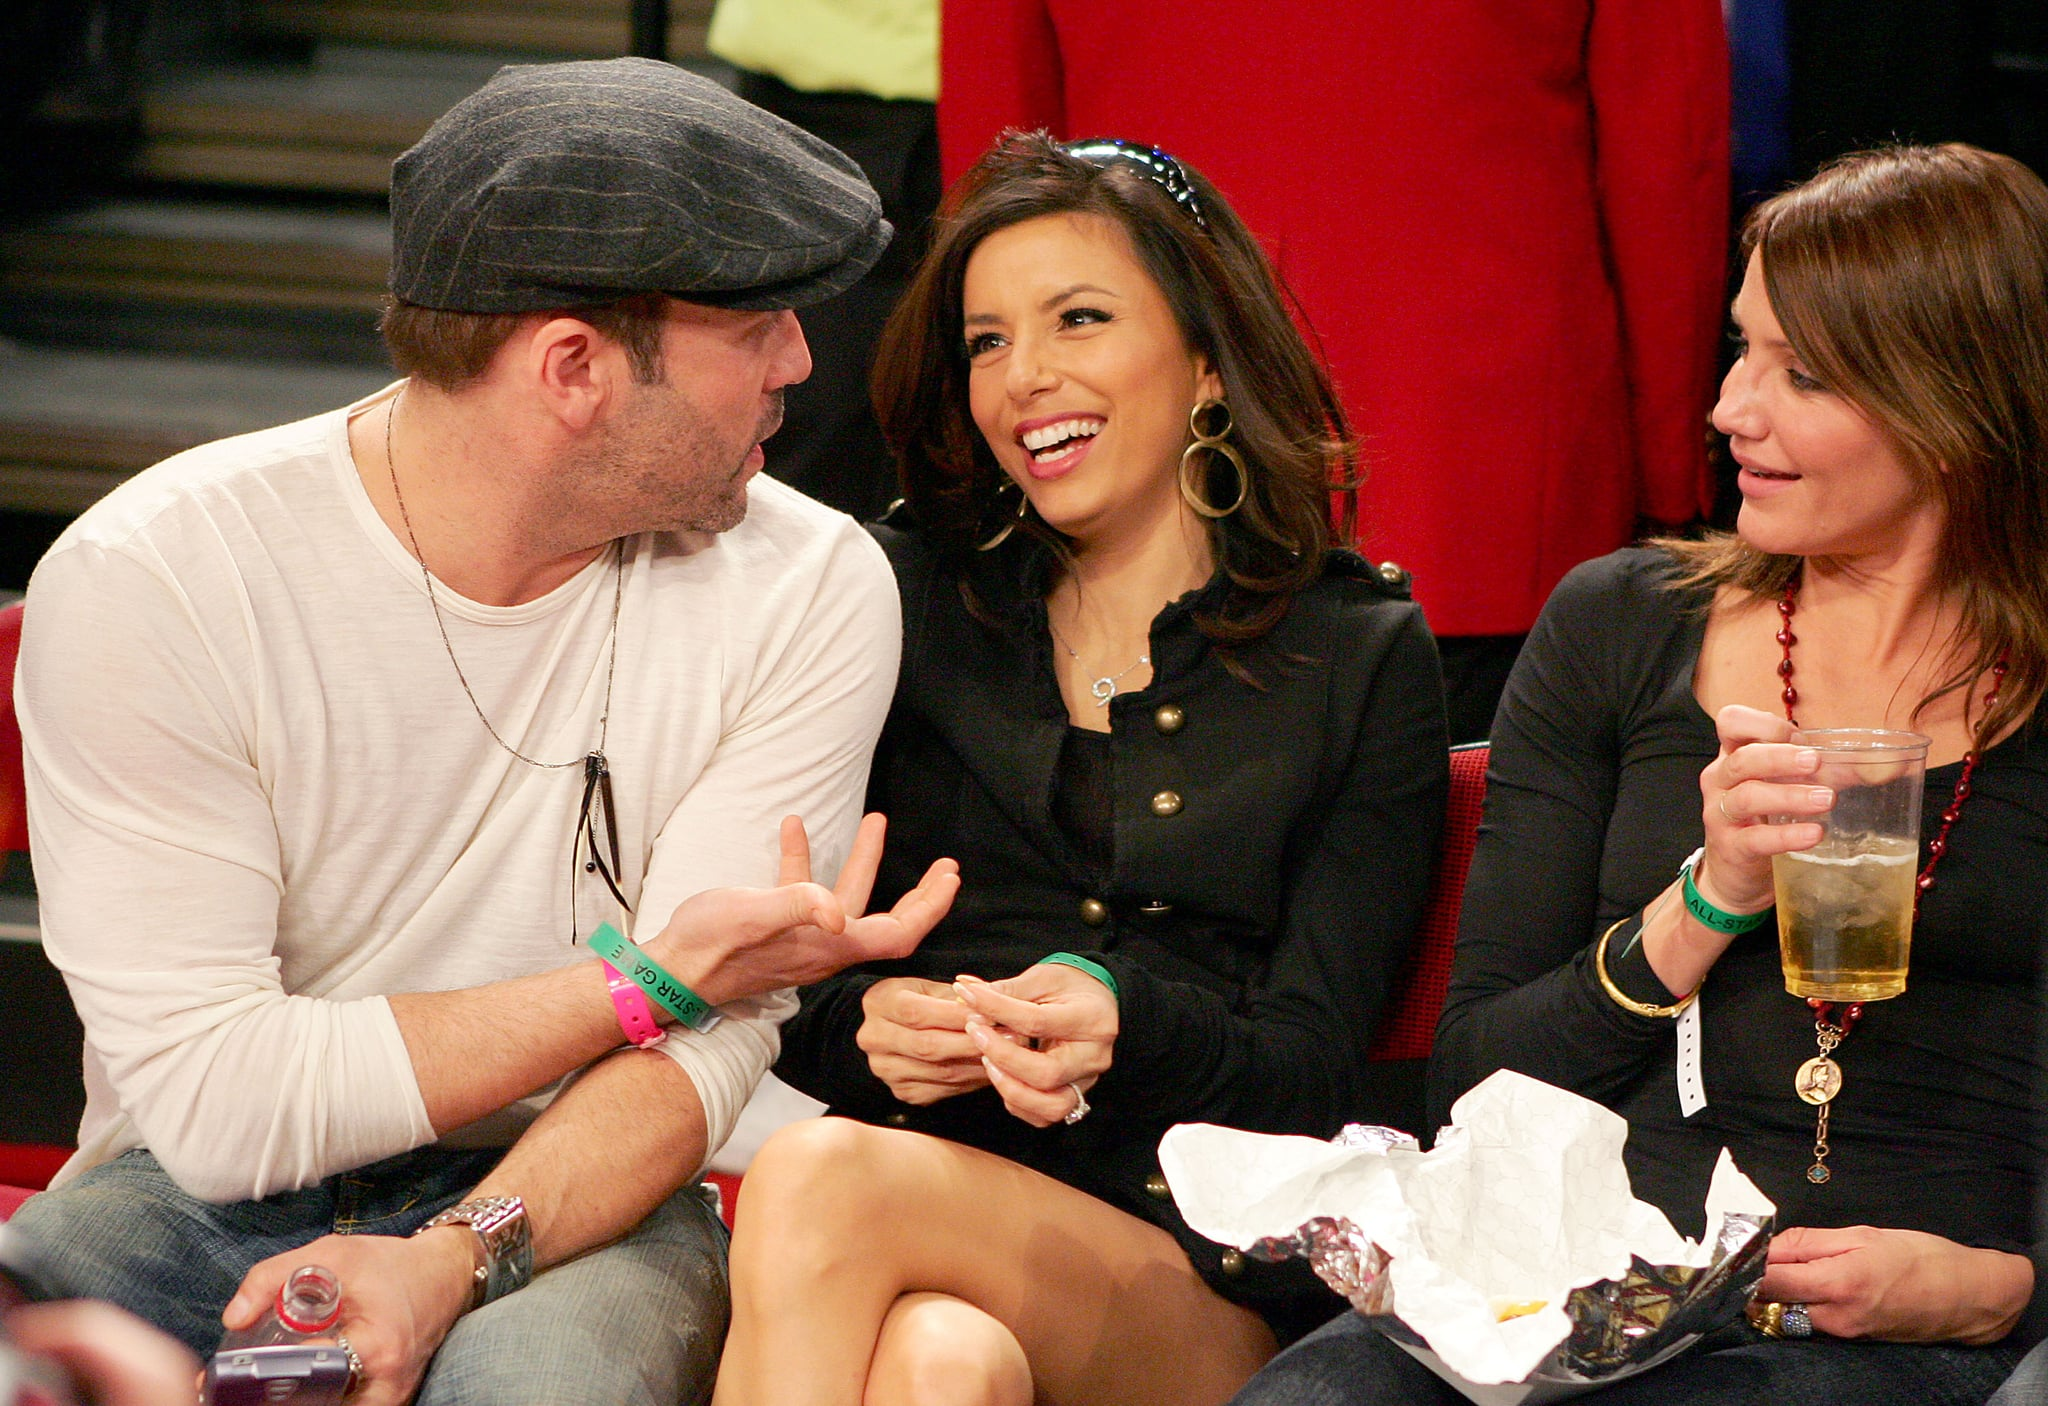 Jeremy Piven schmoozed with Eva Longoria and Cameron Diaz at the NBA All-Star Game in February 2007.